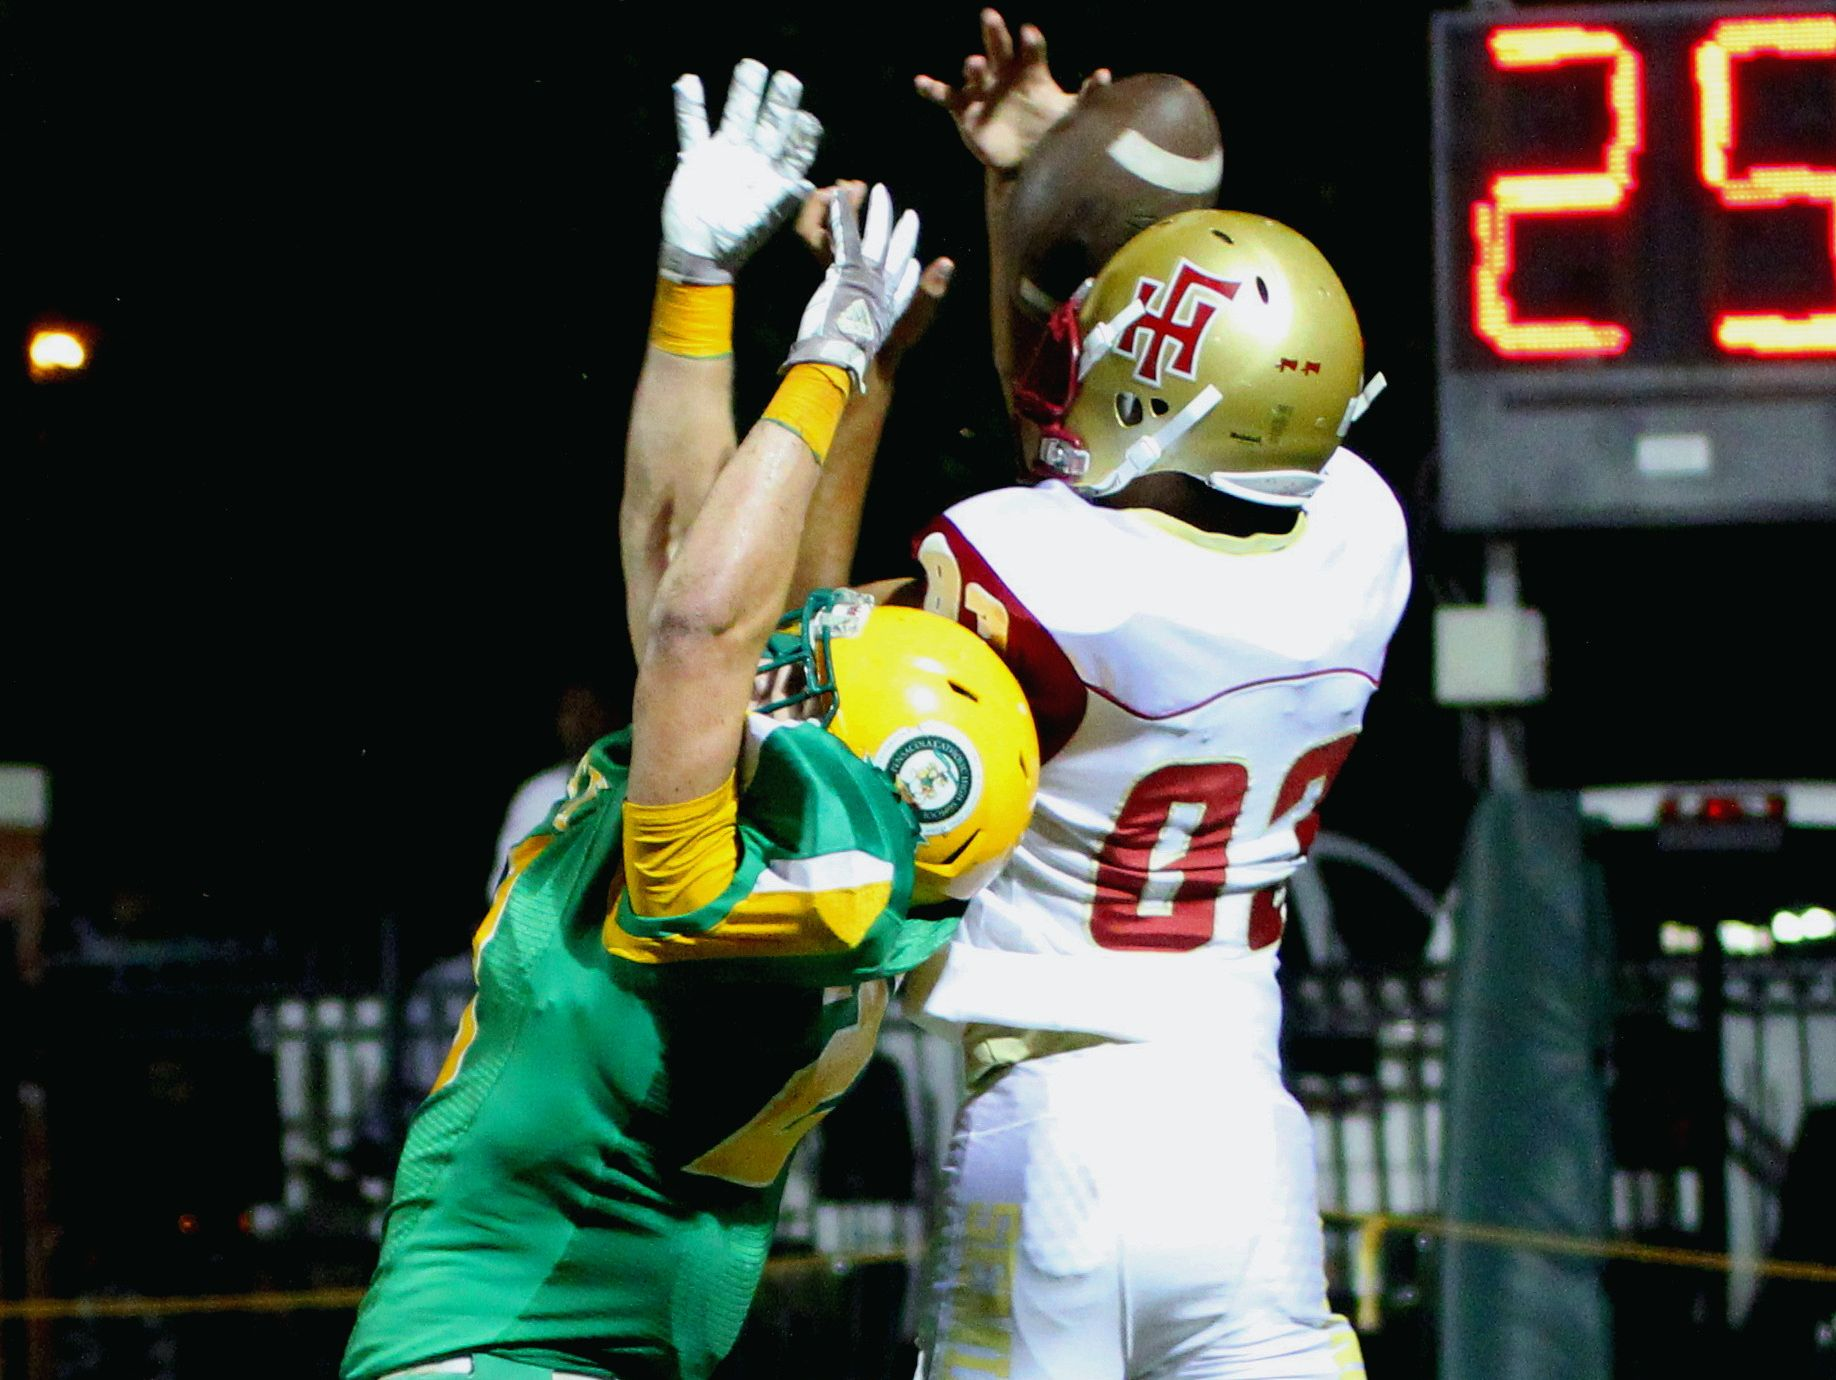 Florida High's Jordan Alexander (83) gets a hand on a pass but couldn't hang on in second half action. Catholic's Collin Acromite (20) defended on the play.